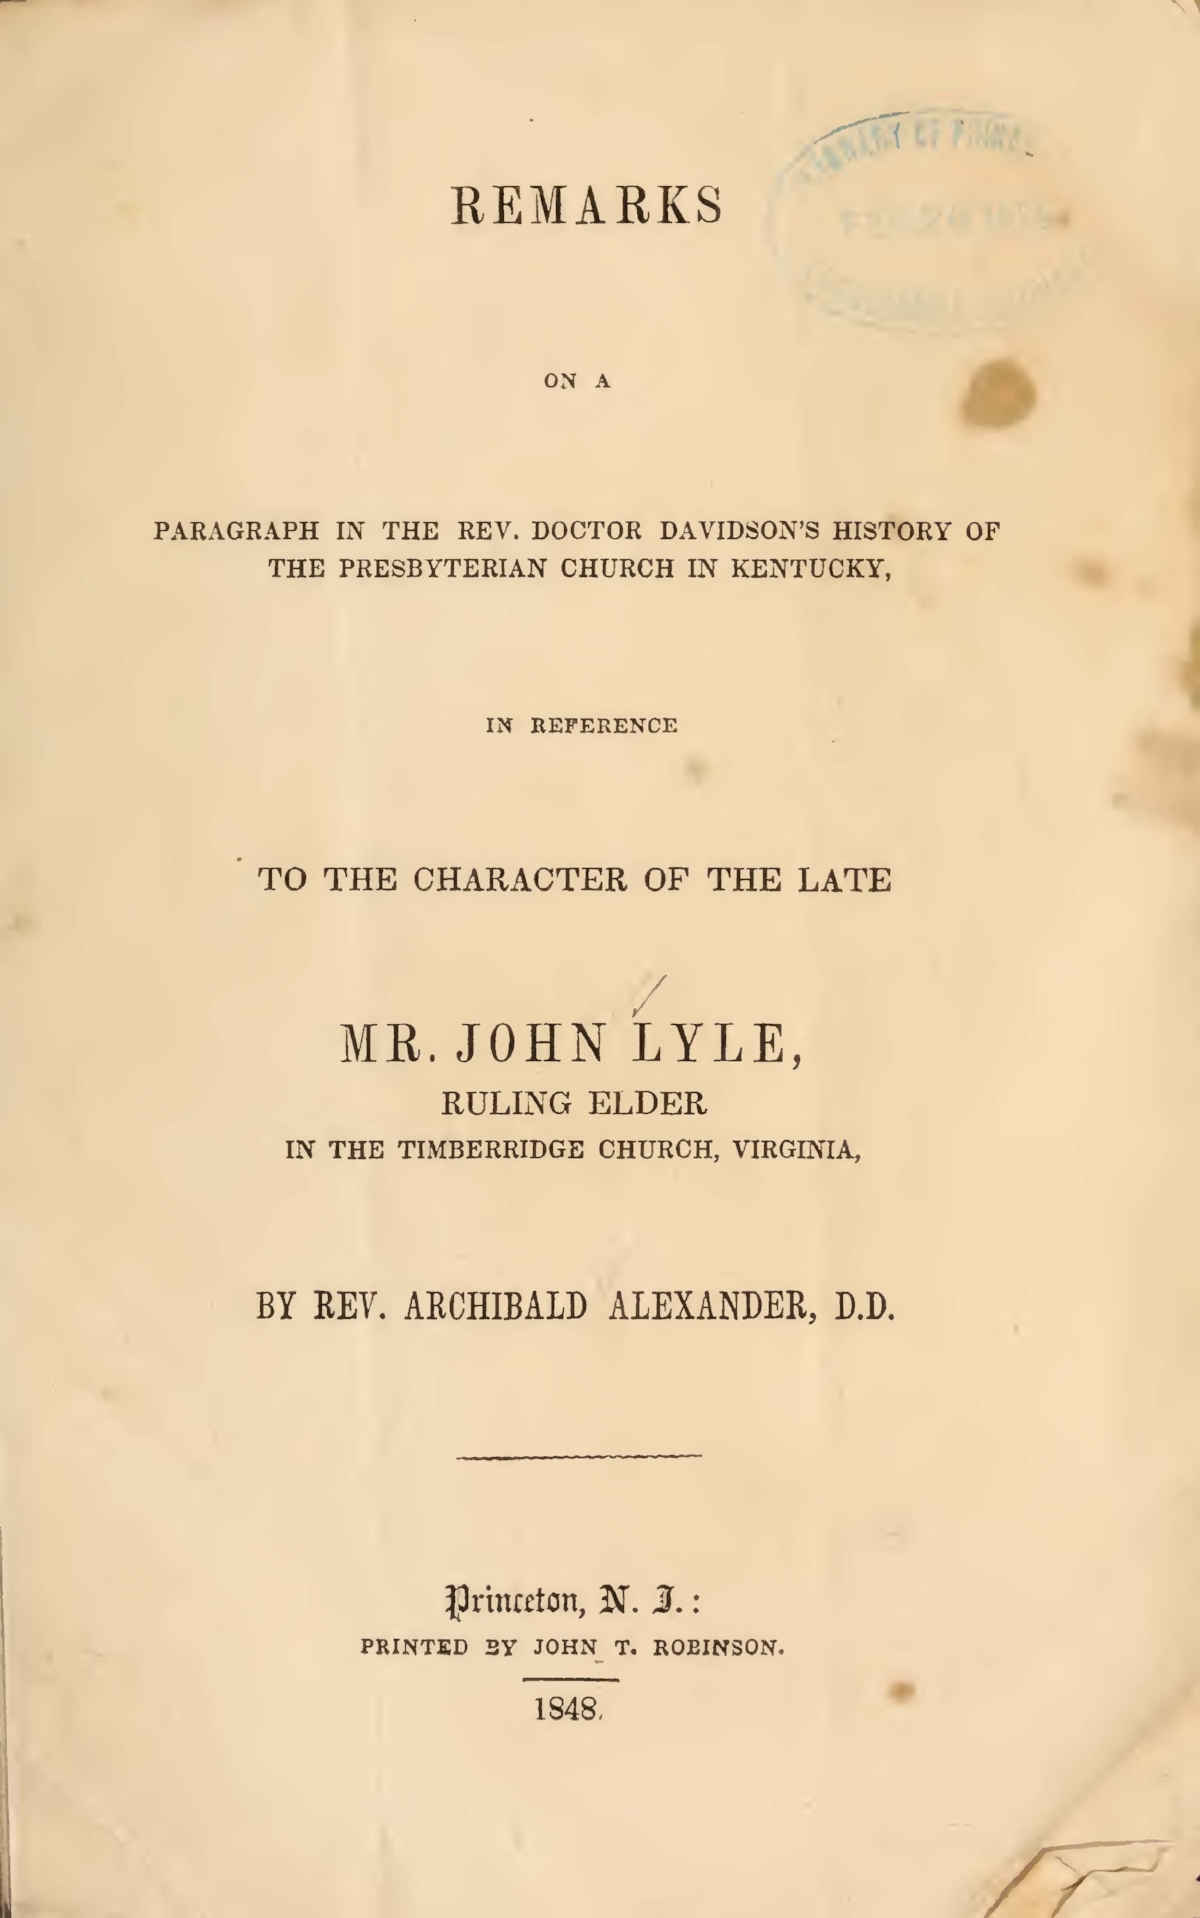 Alexander, Archibald, Remarks on a Paragraph in the Rev. Doctor Davidson's History of the Presbyterian Church in Kentucky Title Page.jpg